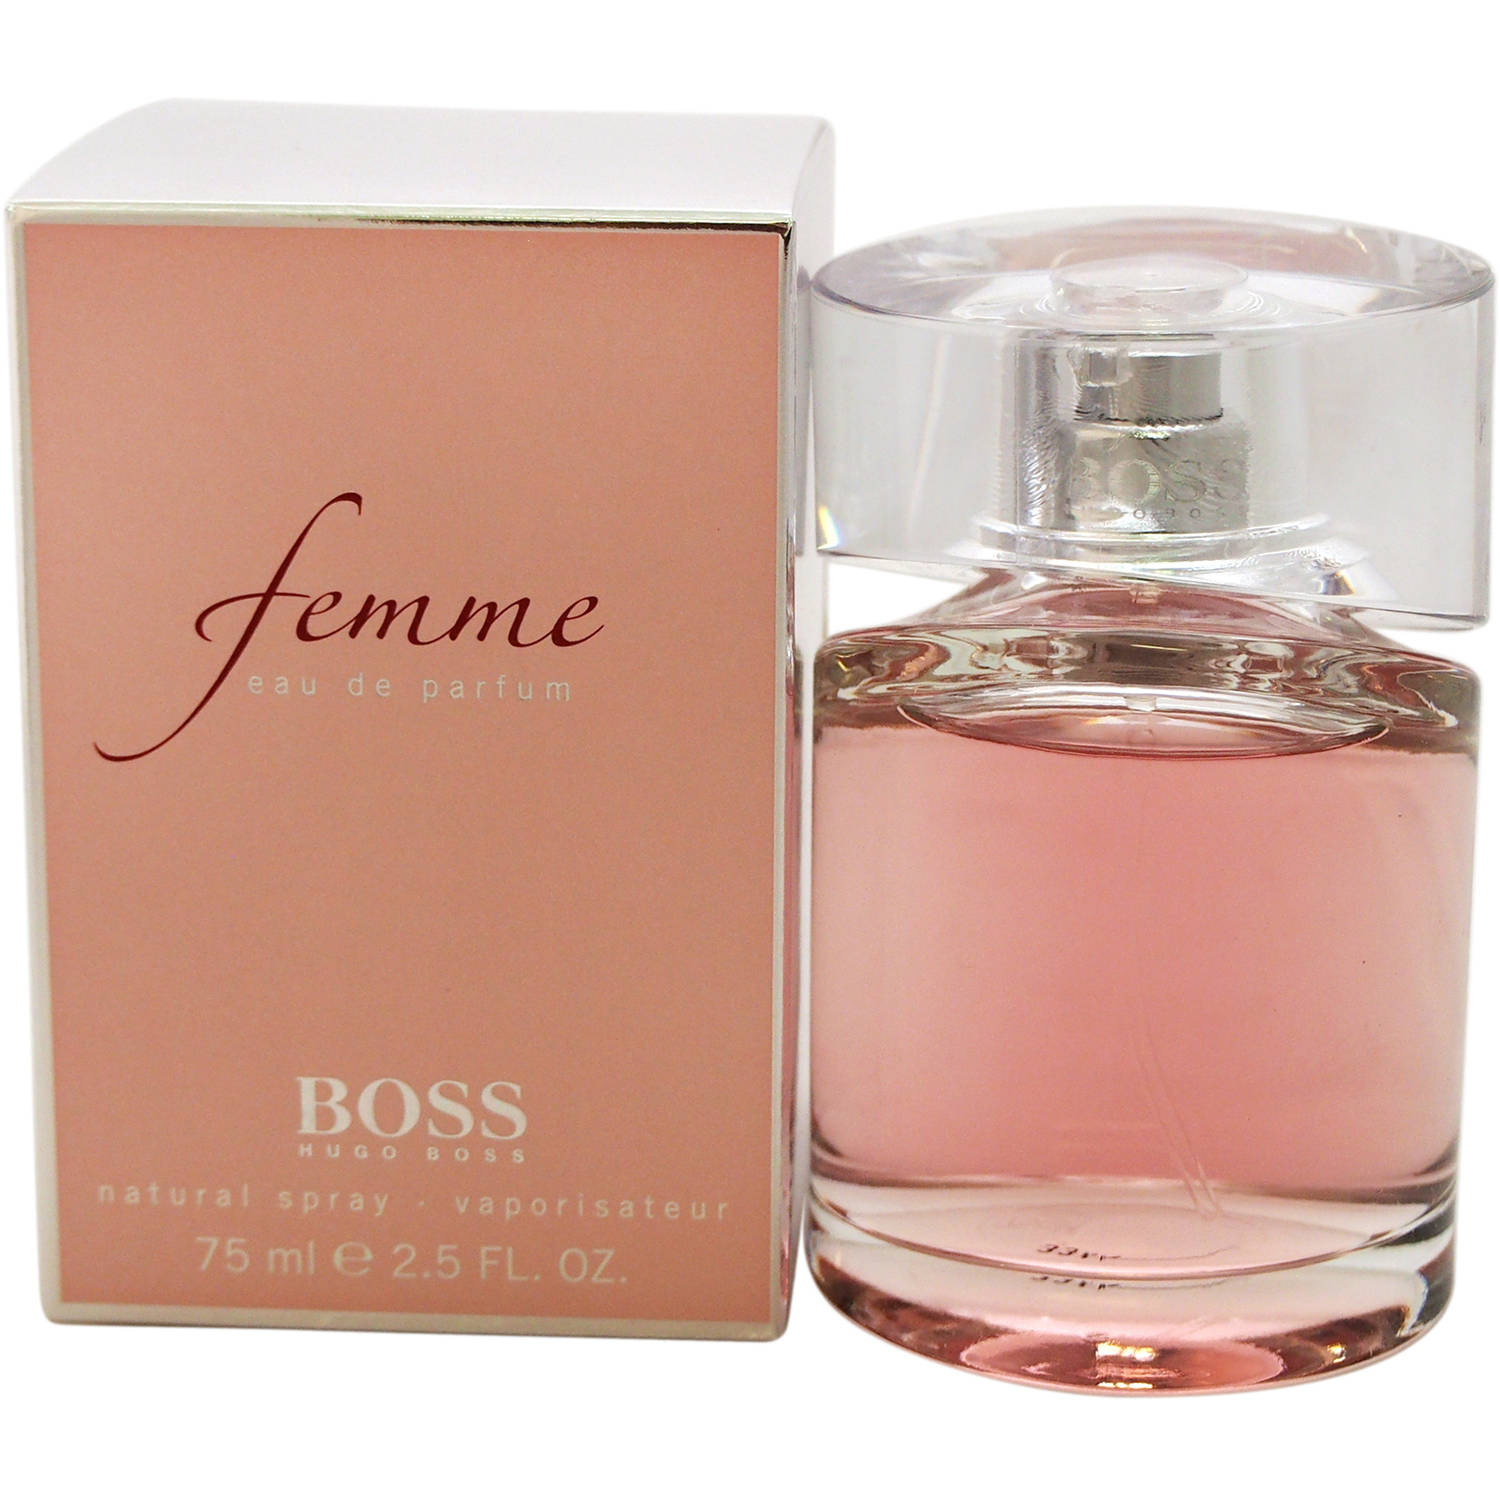 Hugo Boss Femme for Women Eau de Parfum Natural Spray, 2.5 fl oz